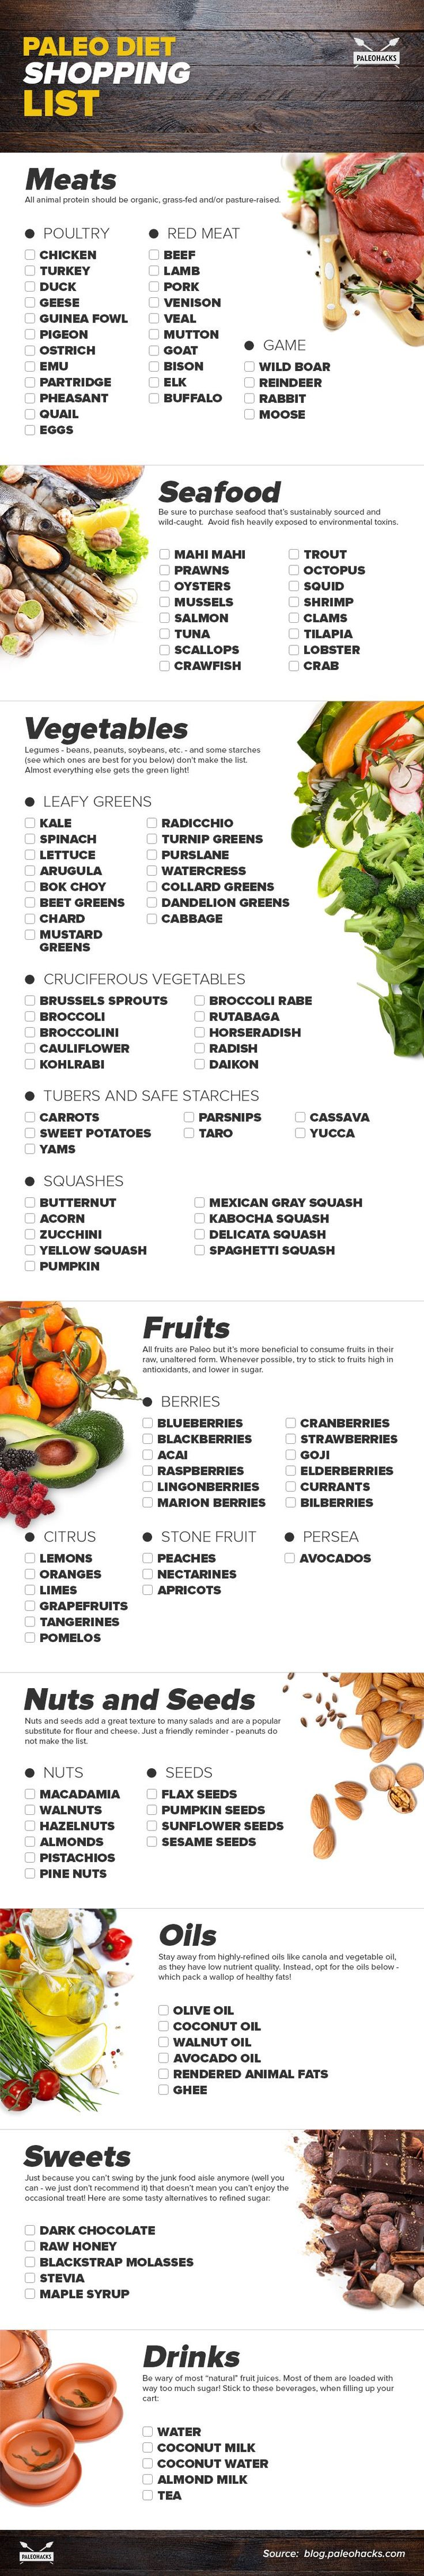 Going primal? We've got a quick and easy breakdown of which Paleo-approved goods will make your shopping cart.